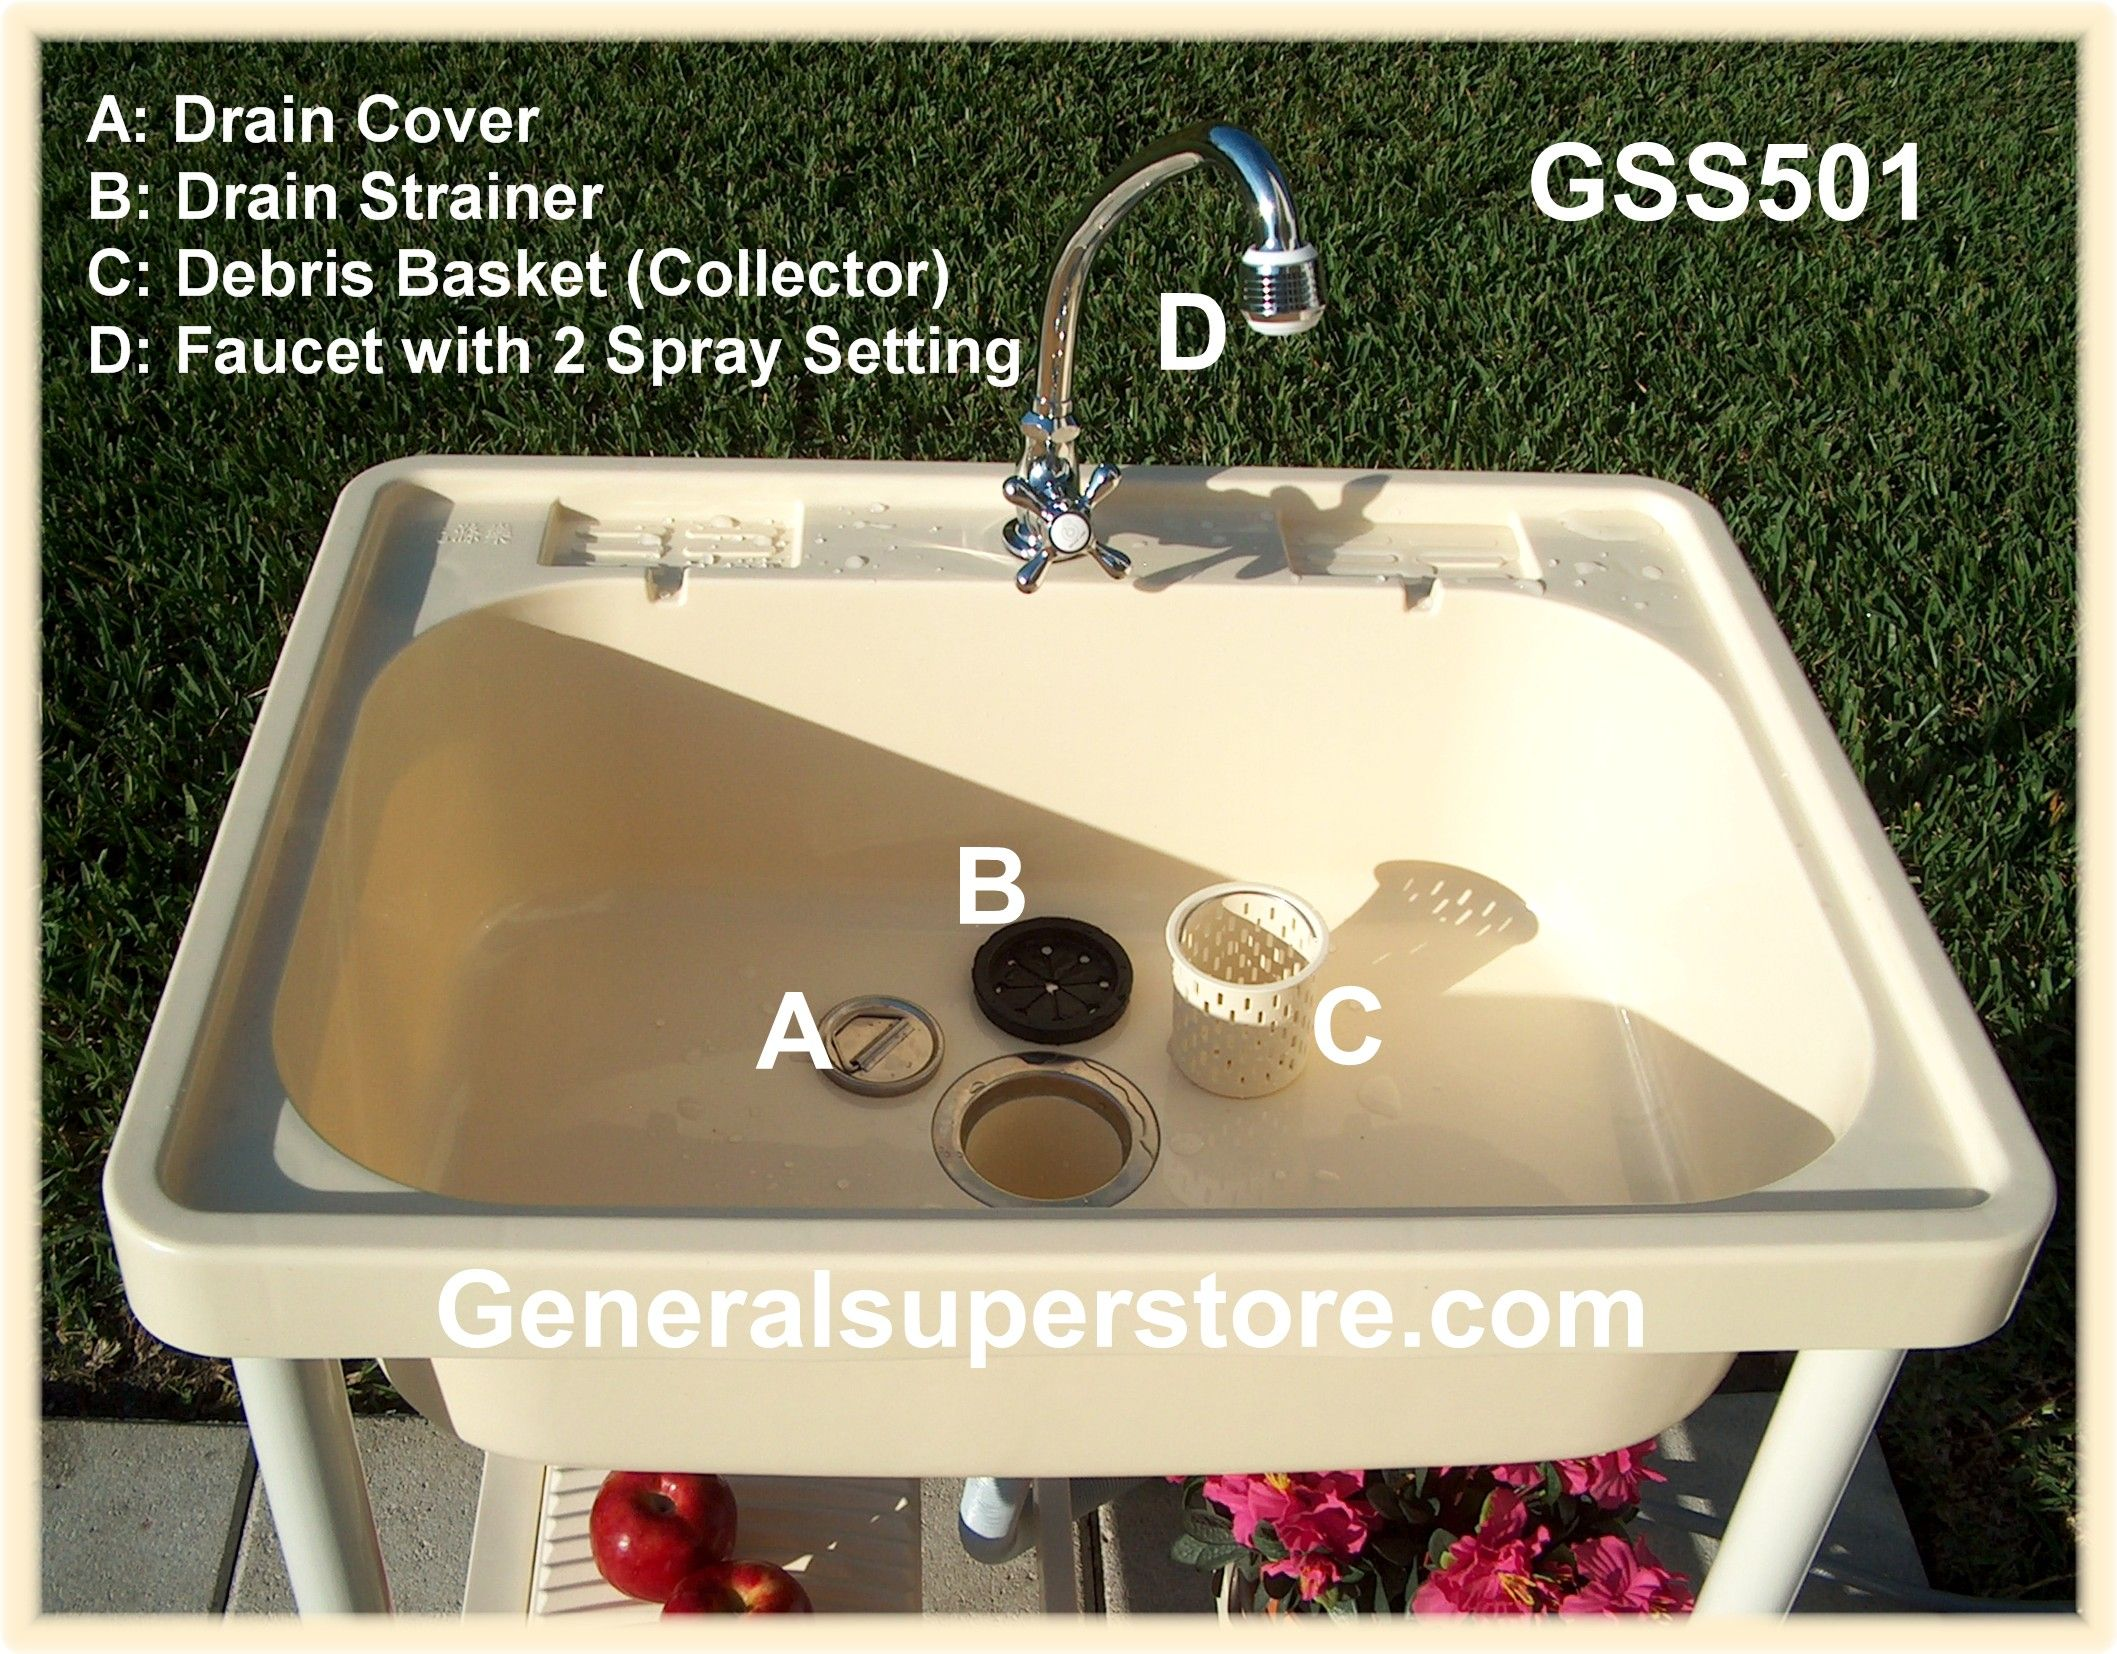 Starling Travel 187 Camping Sink From General Superstore